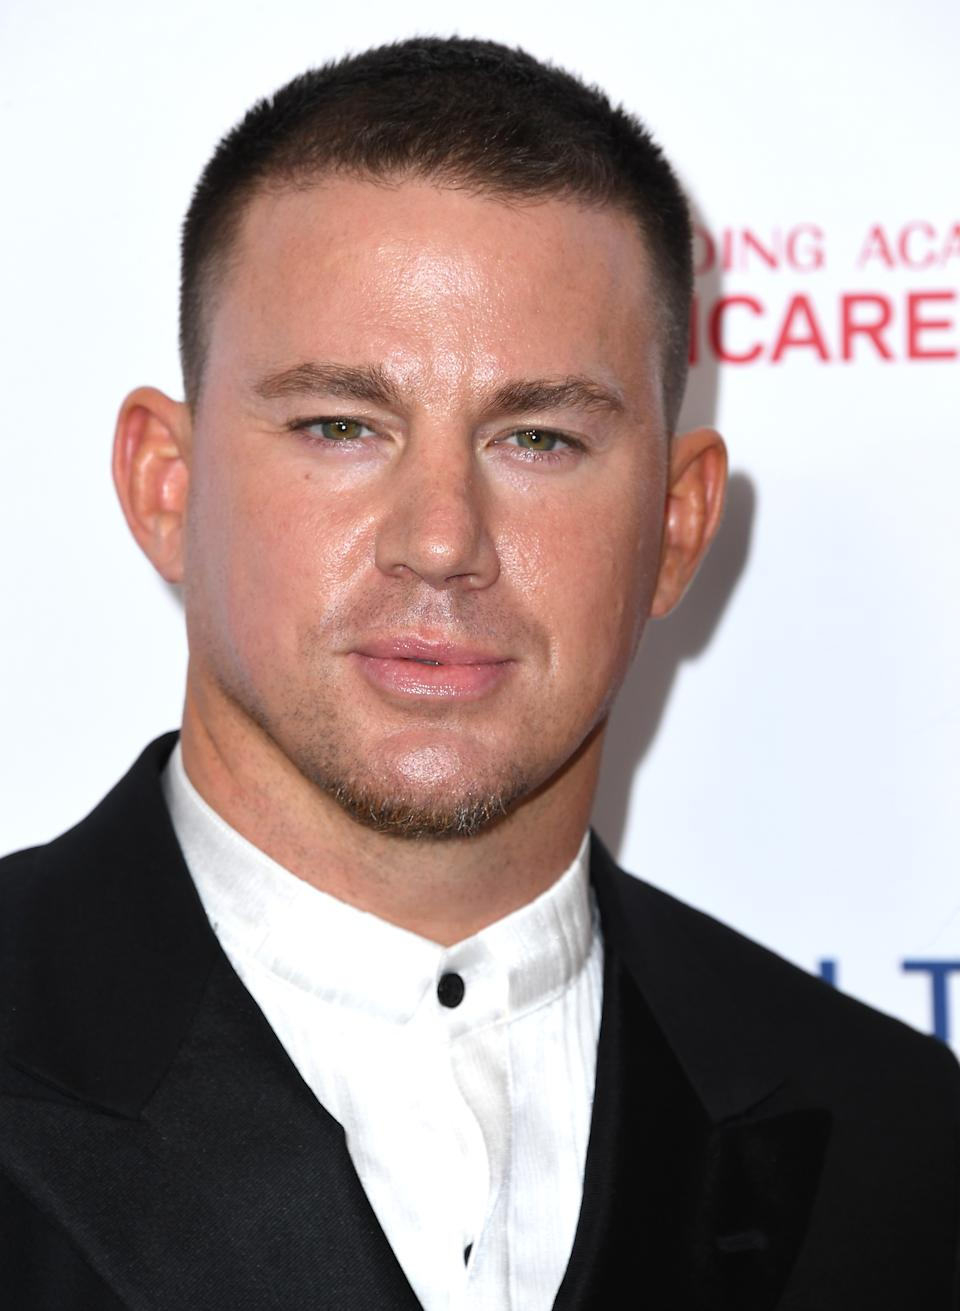 LOS ANGELES, CALIFORNIA - JANUARY 24: Channing Tatum arrives at the 2020 MusiCares Person Of The Year Honoring Aerosmith at West Hall At Los Angeles Convention Center on January 24, 2020 in Los Angeles, California. (Photo by Steve Granitz/WireImage)